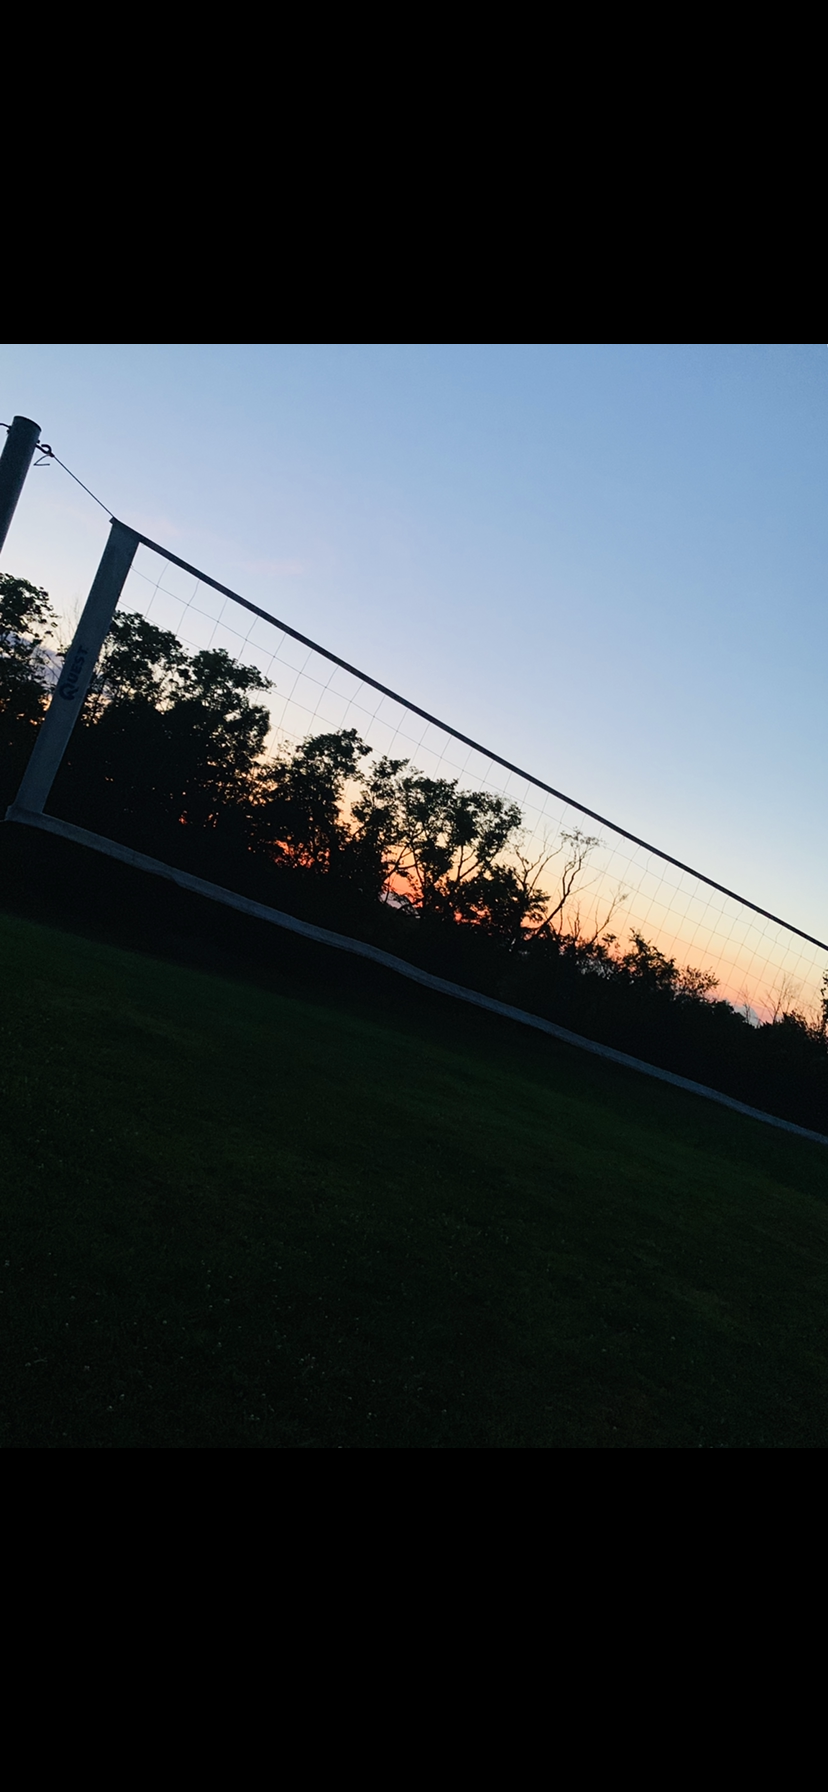 Personal Aesthetic Volleyball Picture Volleyball Pictures Aesthetic Pictures Pictures